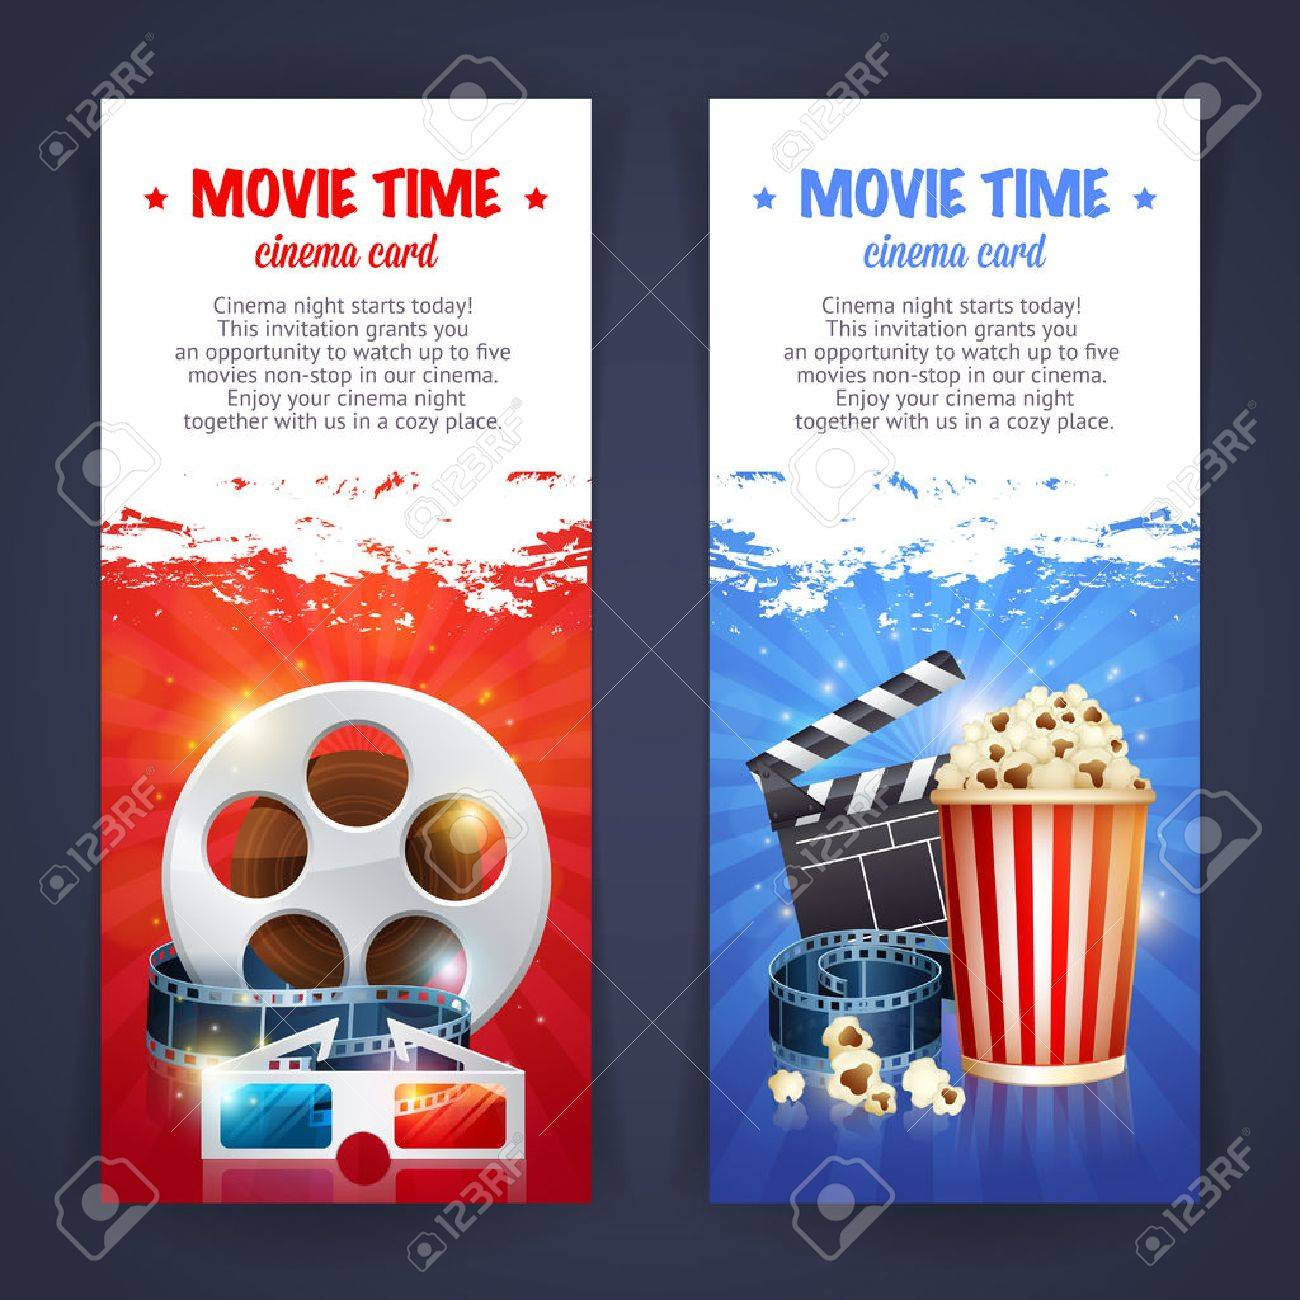 Realistic cinema movie poster template with film reel, clapper, popcorn, 3D glasses, conceptbanners with bokeh - 43143729